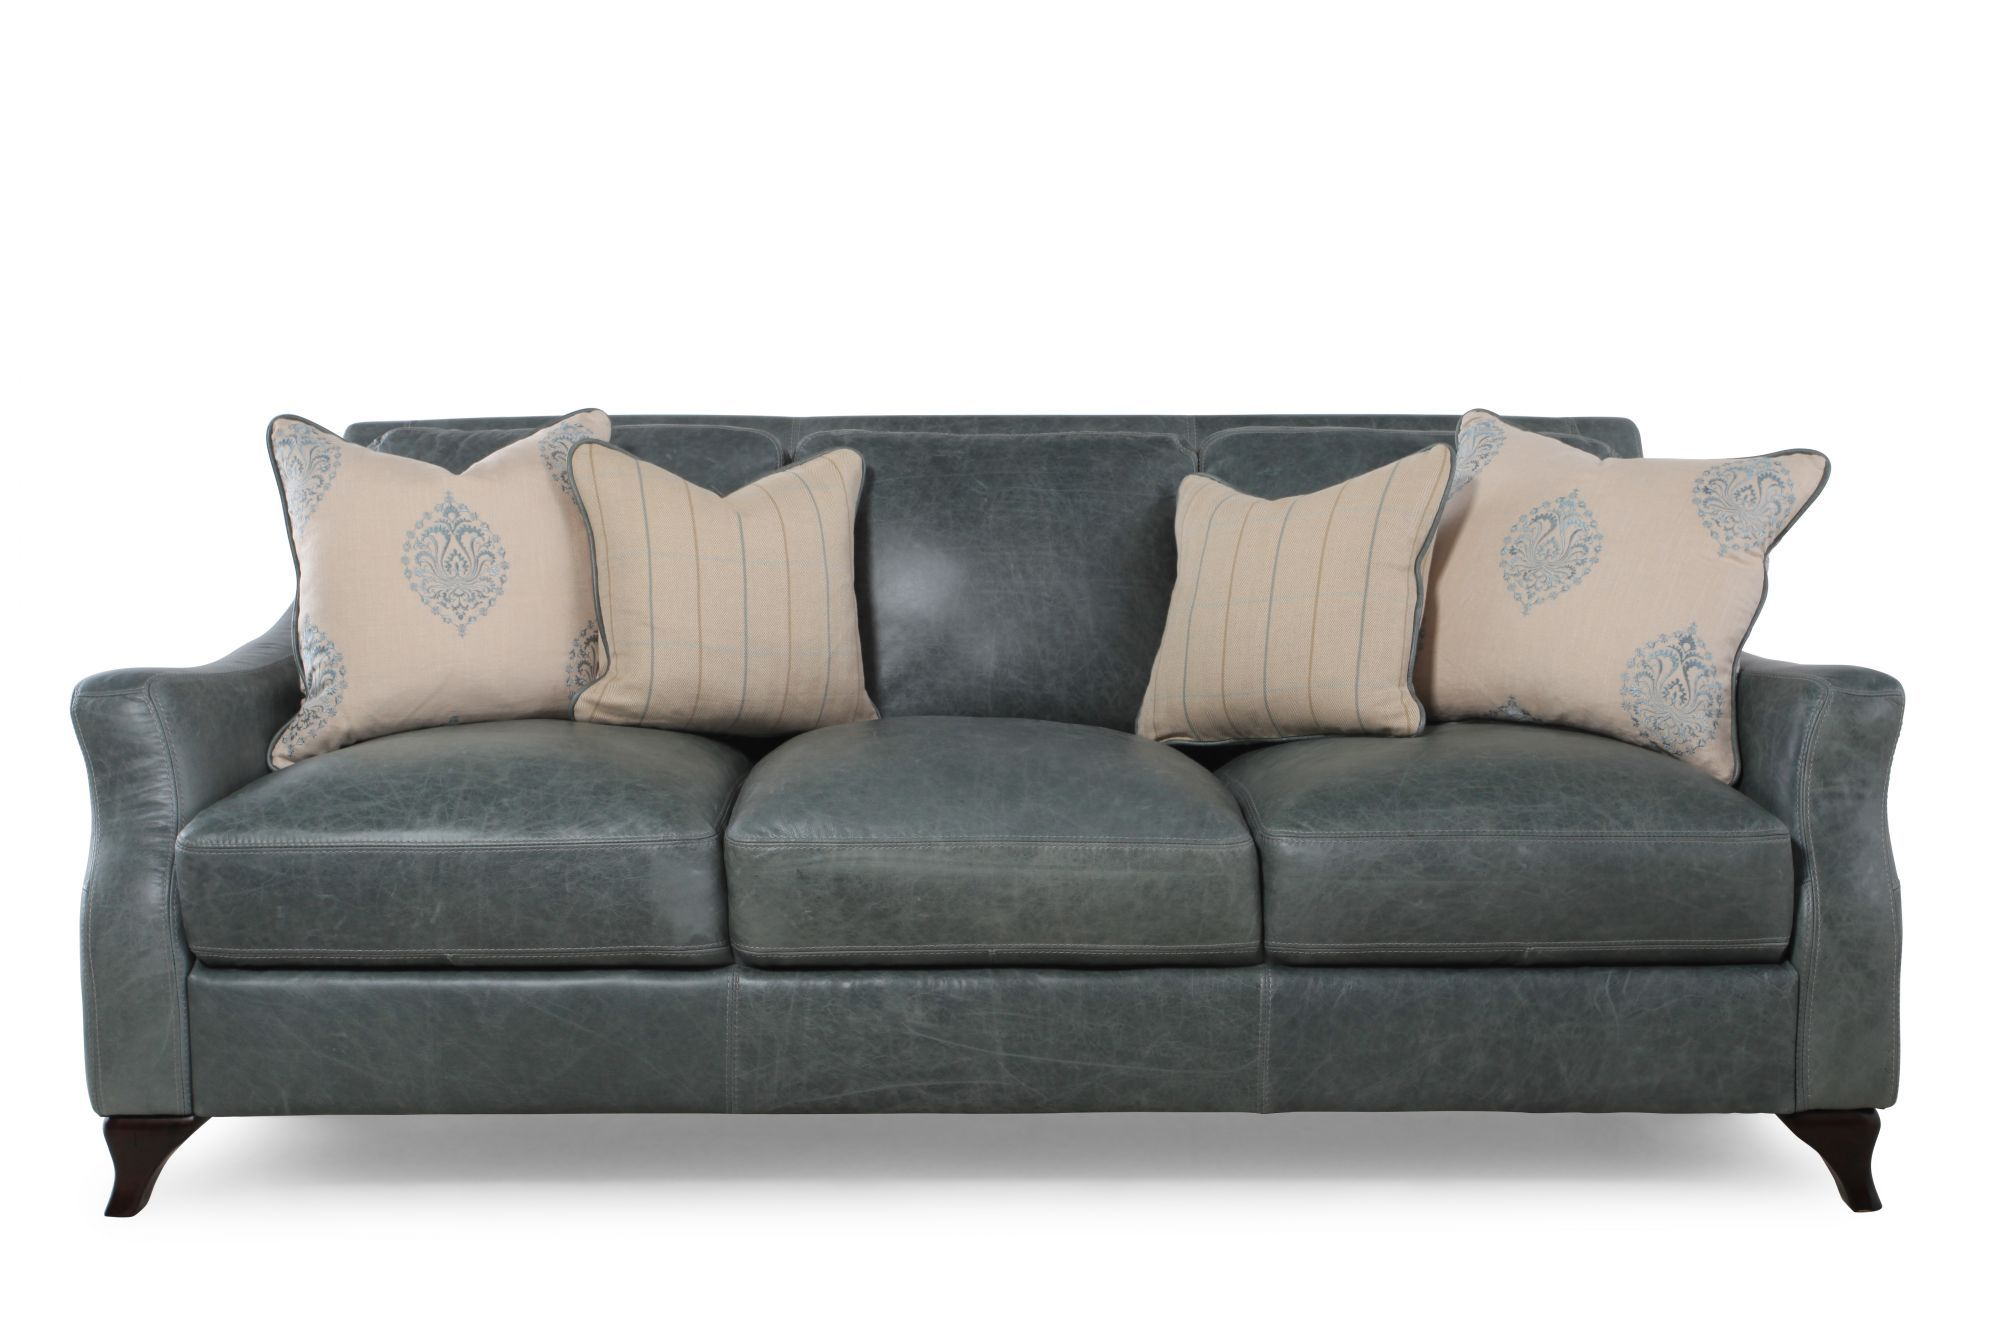 Lovely Buy Simon Li Furniture Camden Grande Silver Lake Sofa Set From National  Furniture Supply At Lowest Price And Great Service.